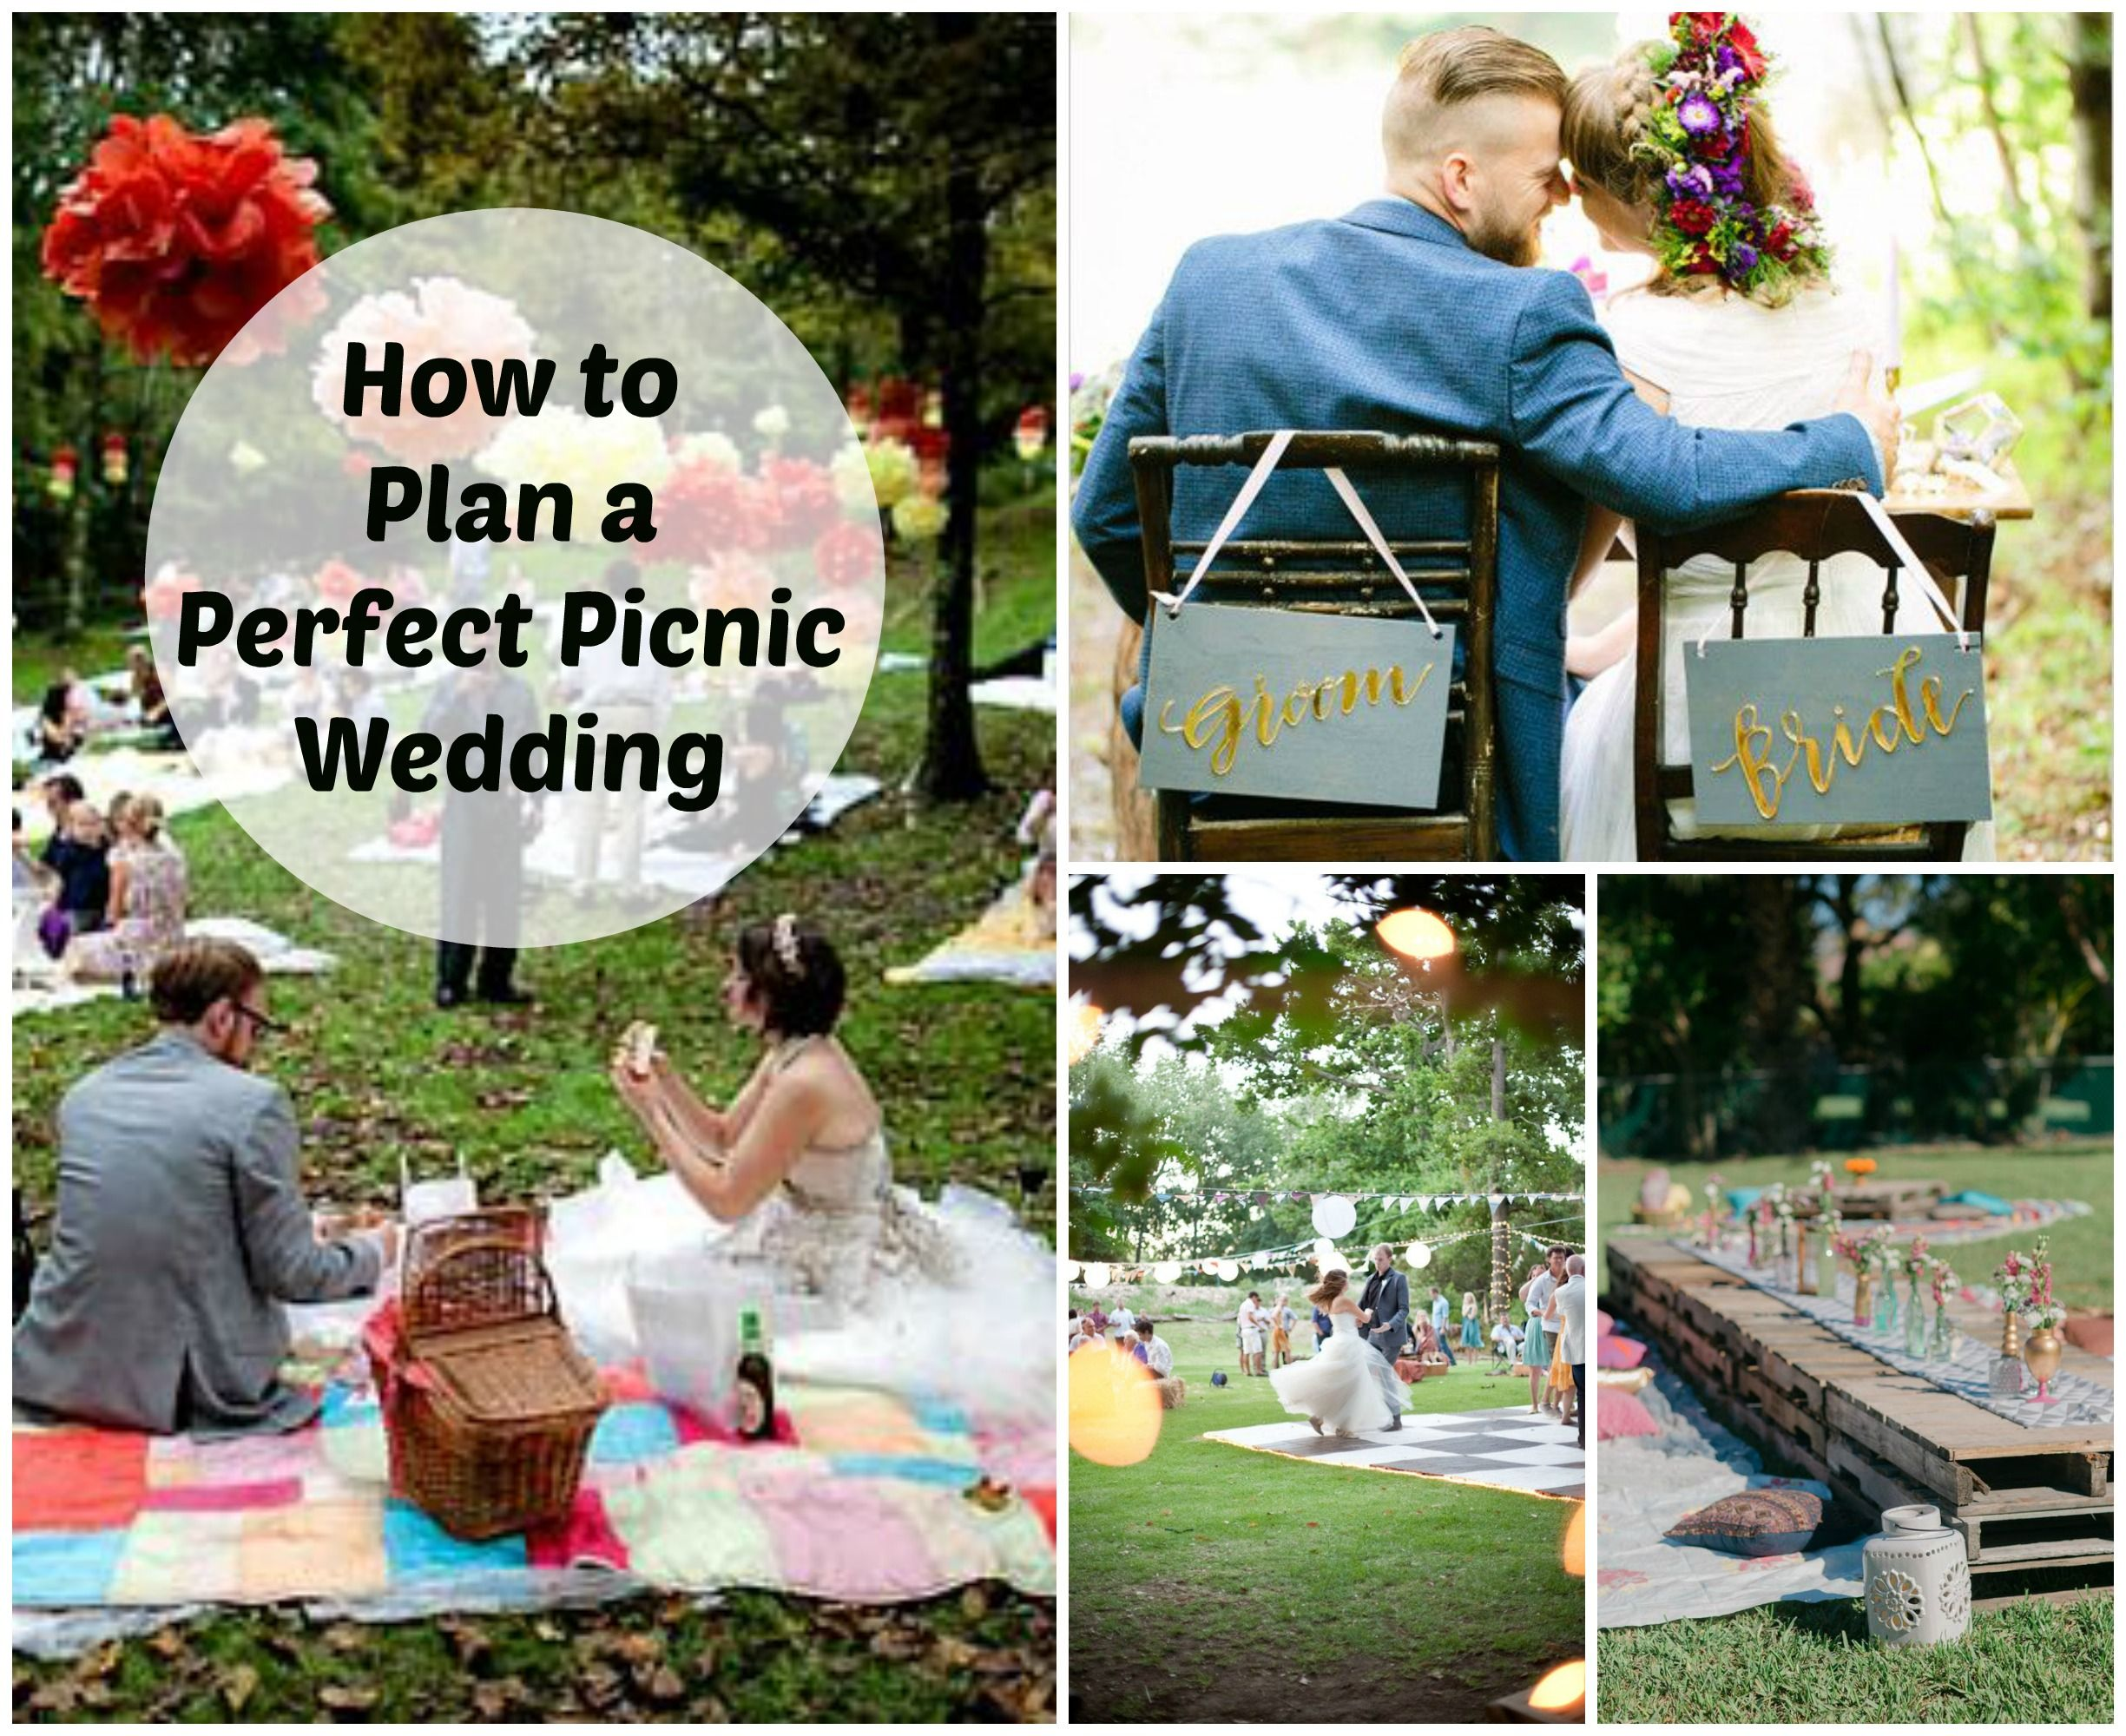 If You Fancy An Outdoor Wedding Reception, Then Picnic